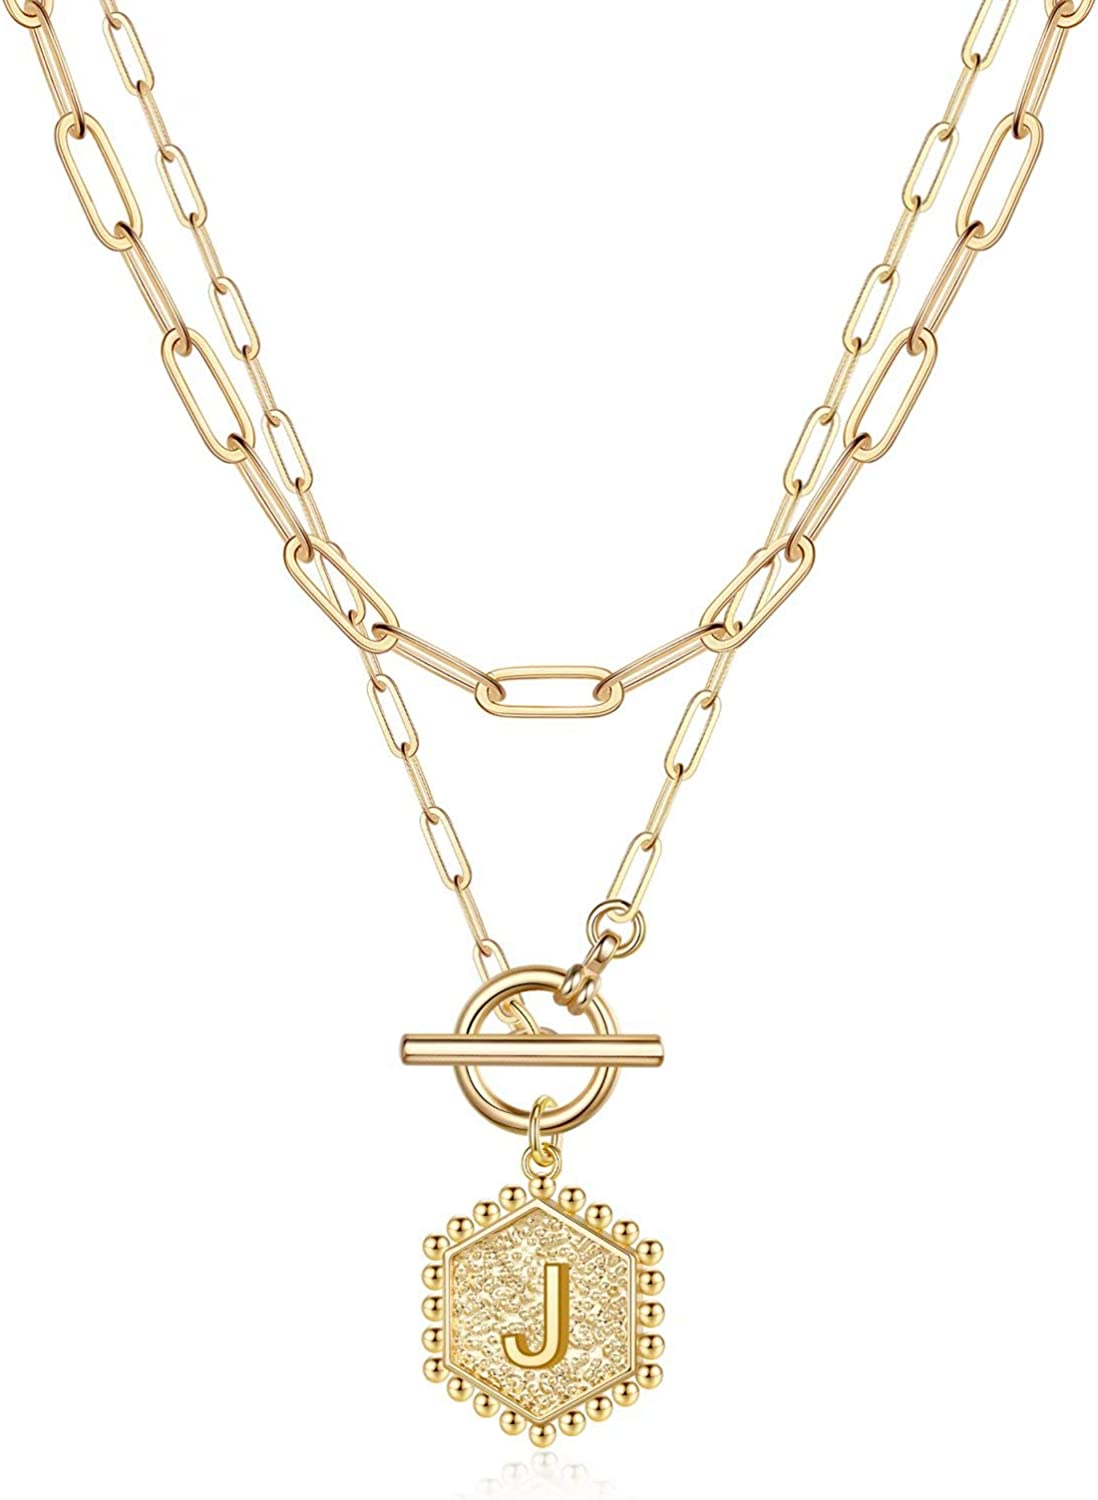 Layered Gold Initial Necklaces for Women, 14K Gold Plated Paperclip Link Chain Necklace Hexagon Letter Pendant Toggle Clasp Layering Necklaces for Women Gold Layered Initial Choker Necklaces for Women